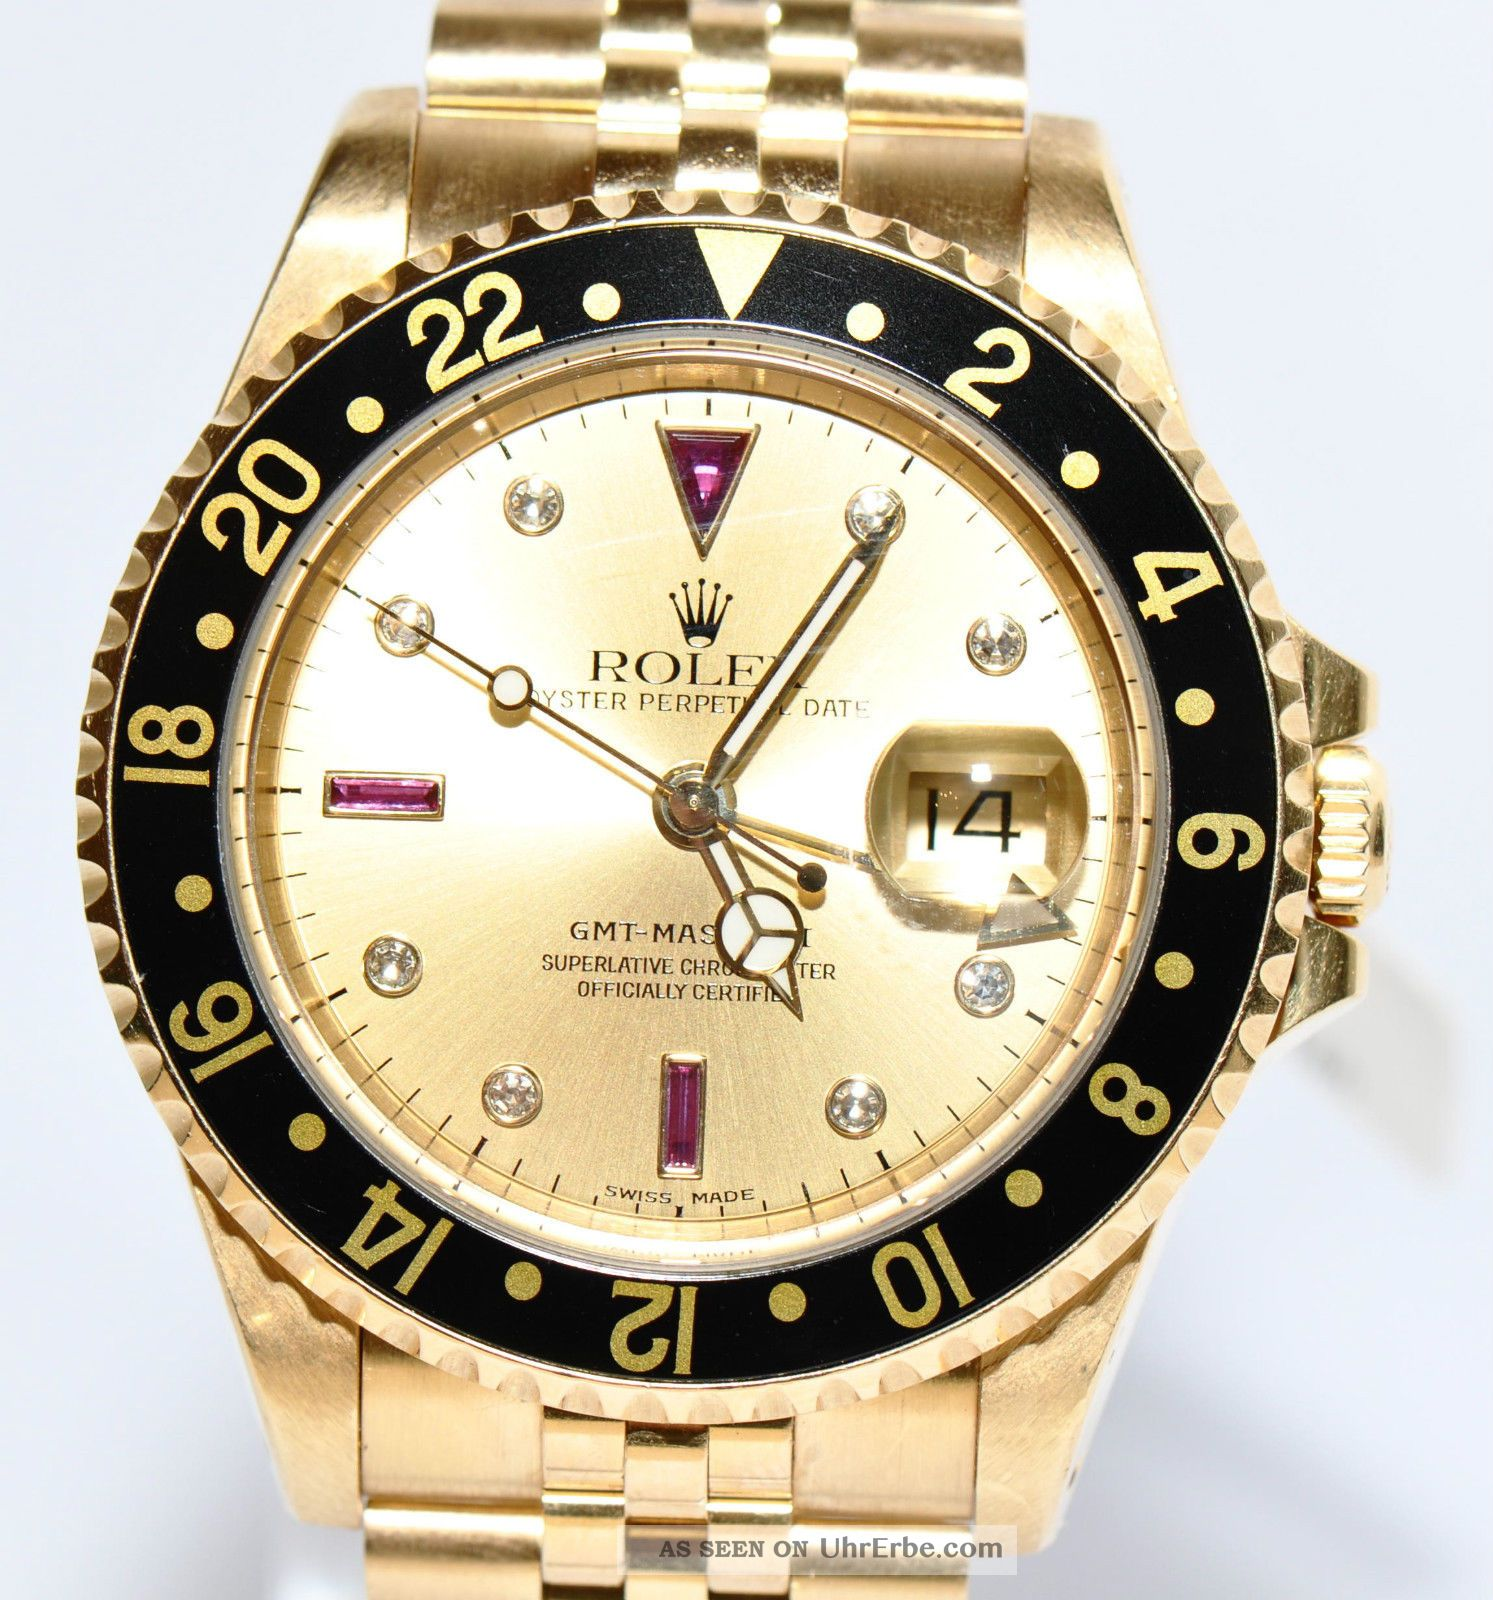 rolex gmt master ii sultan diamant rubin zifferblatt gold. Black Bedroom Furniture Sets. Home Design Ideas